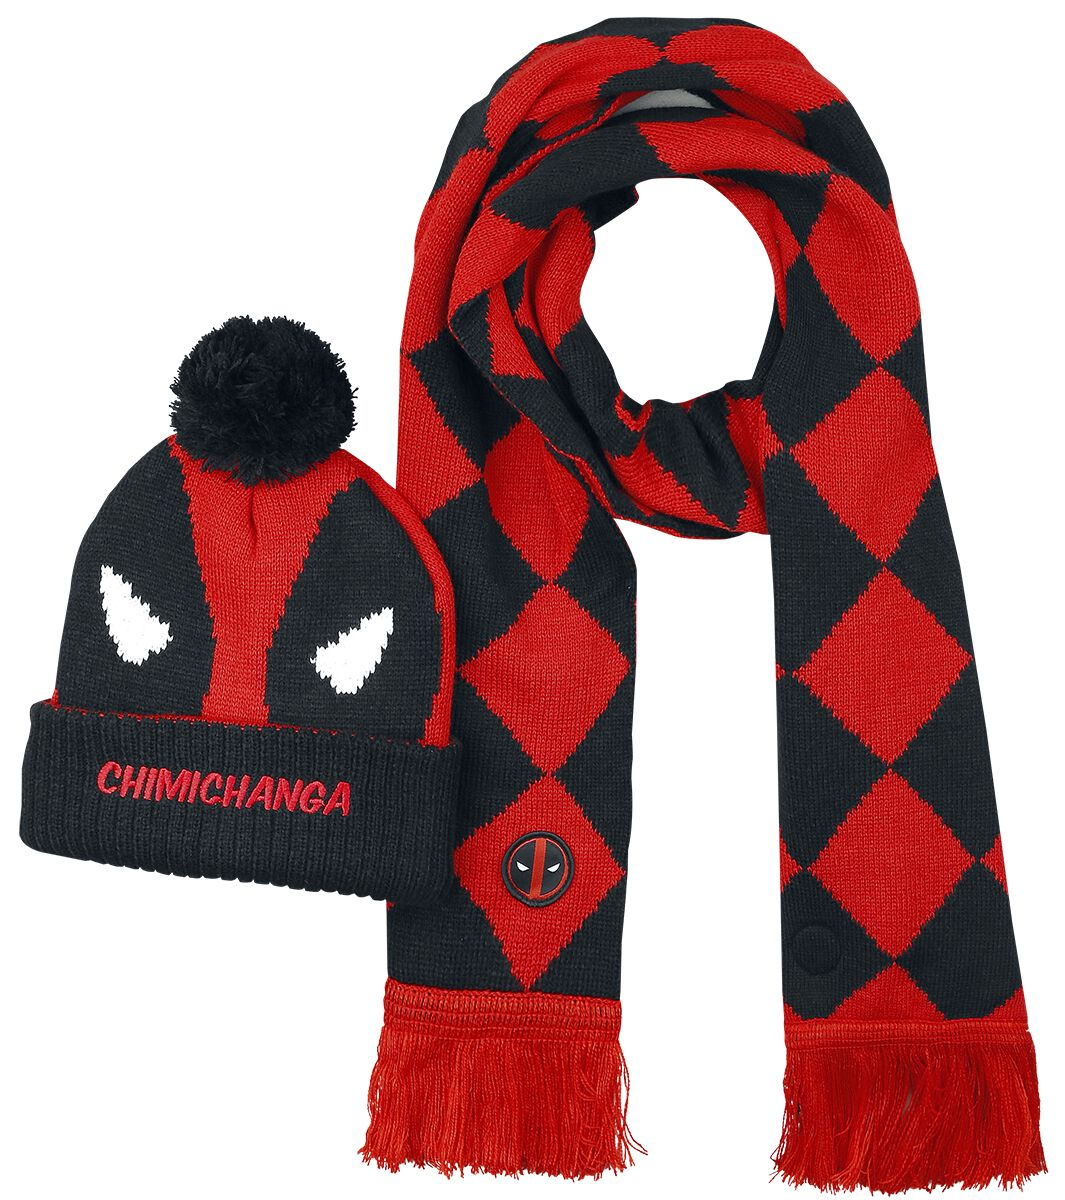 Image of   Deadpool Chimichanga Vintersæt sort-rød-hvid